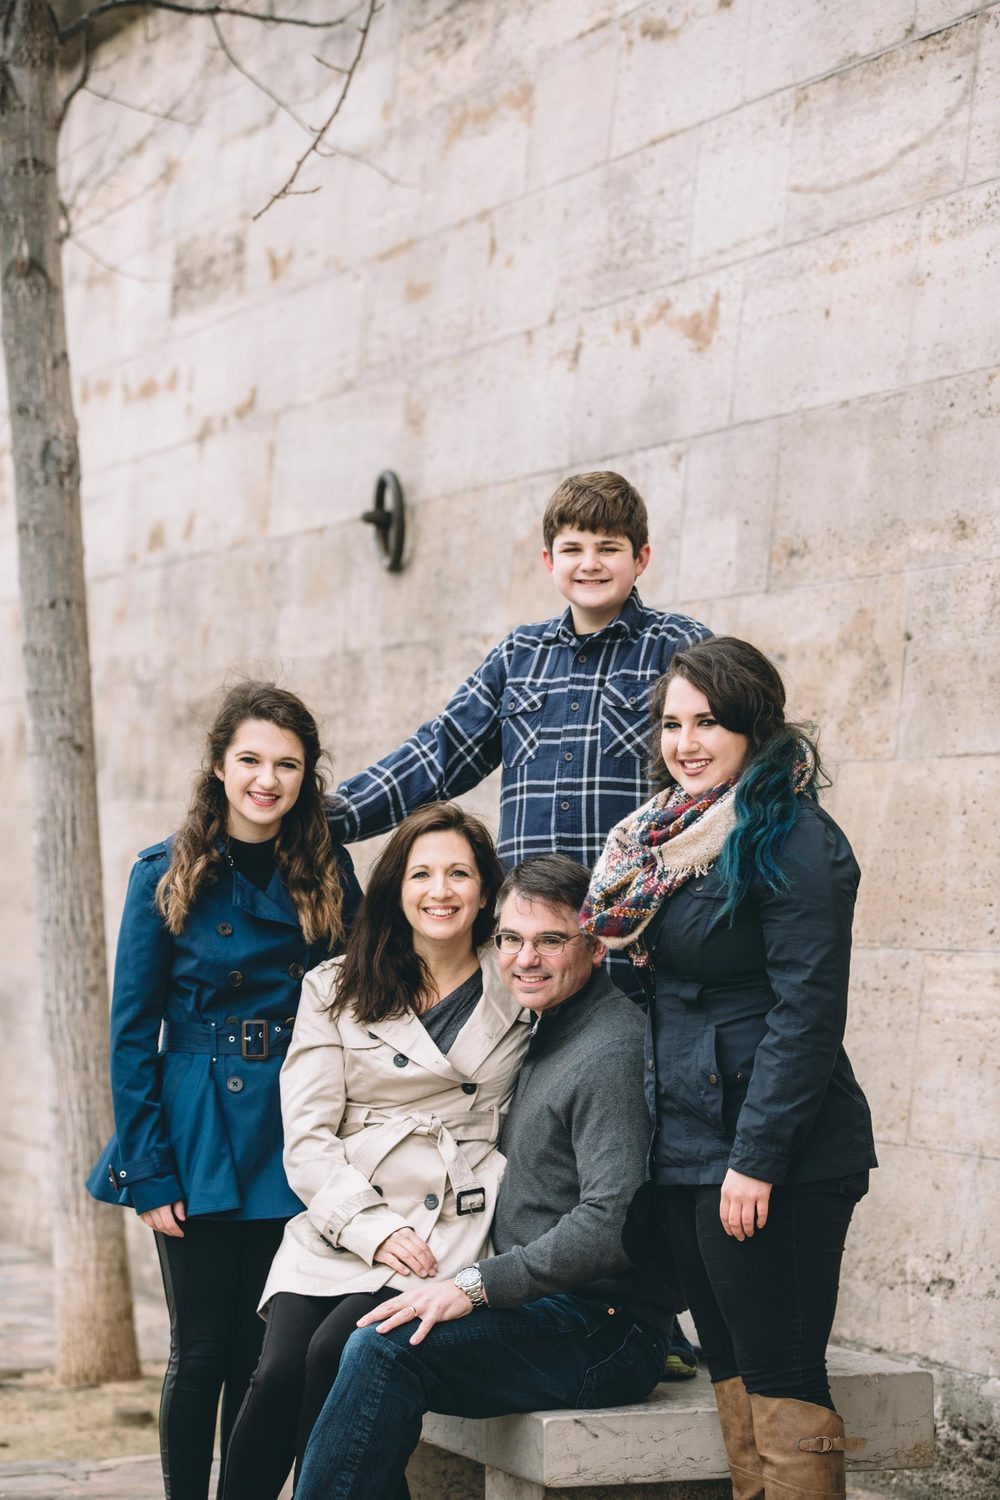 paris-family-kids-europe-vacation-photography